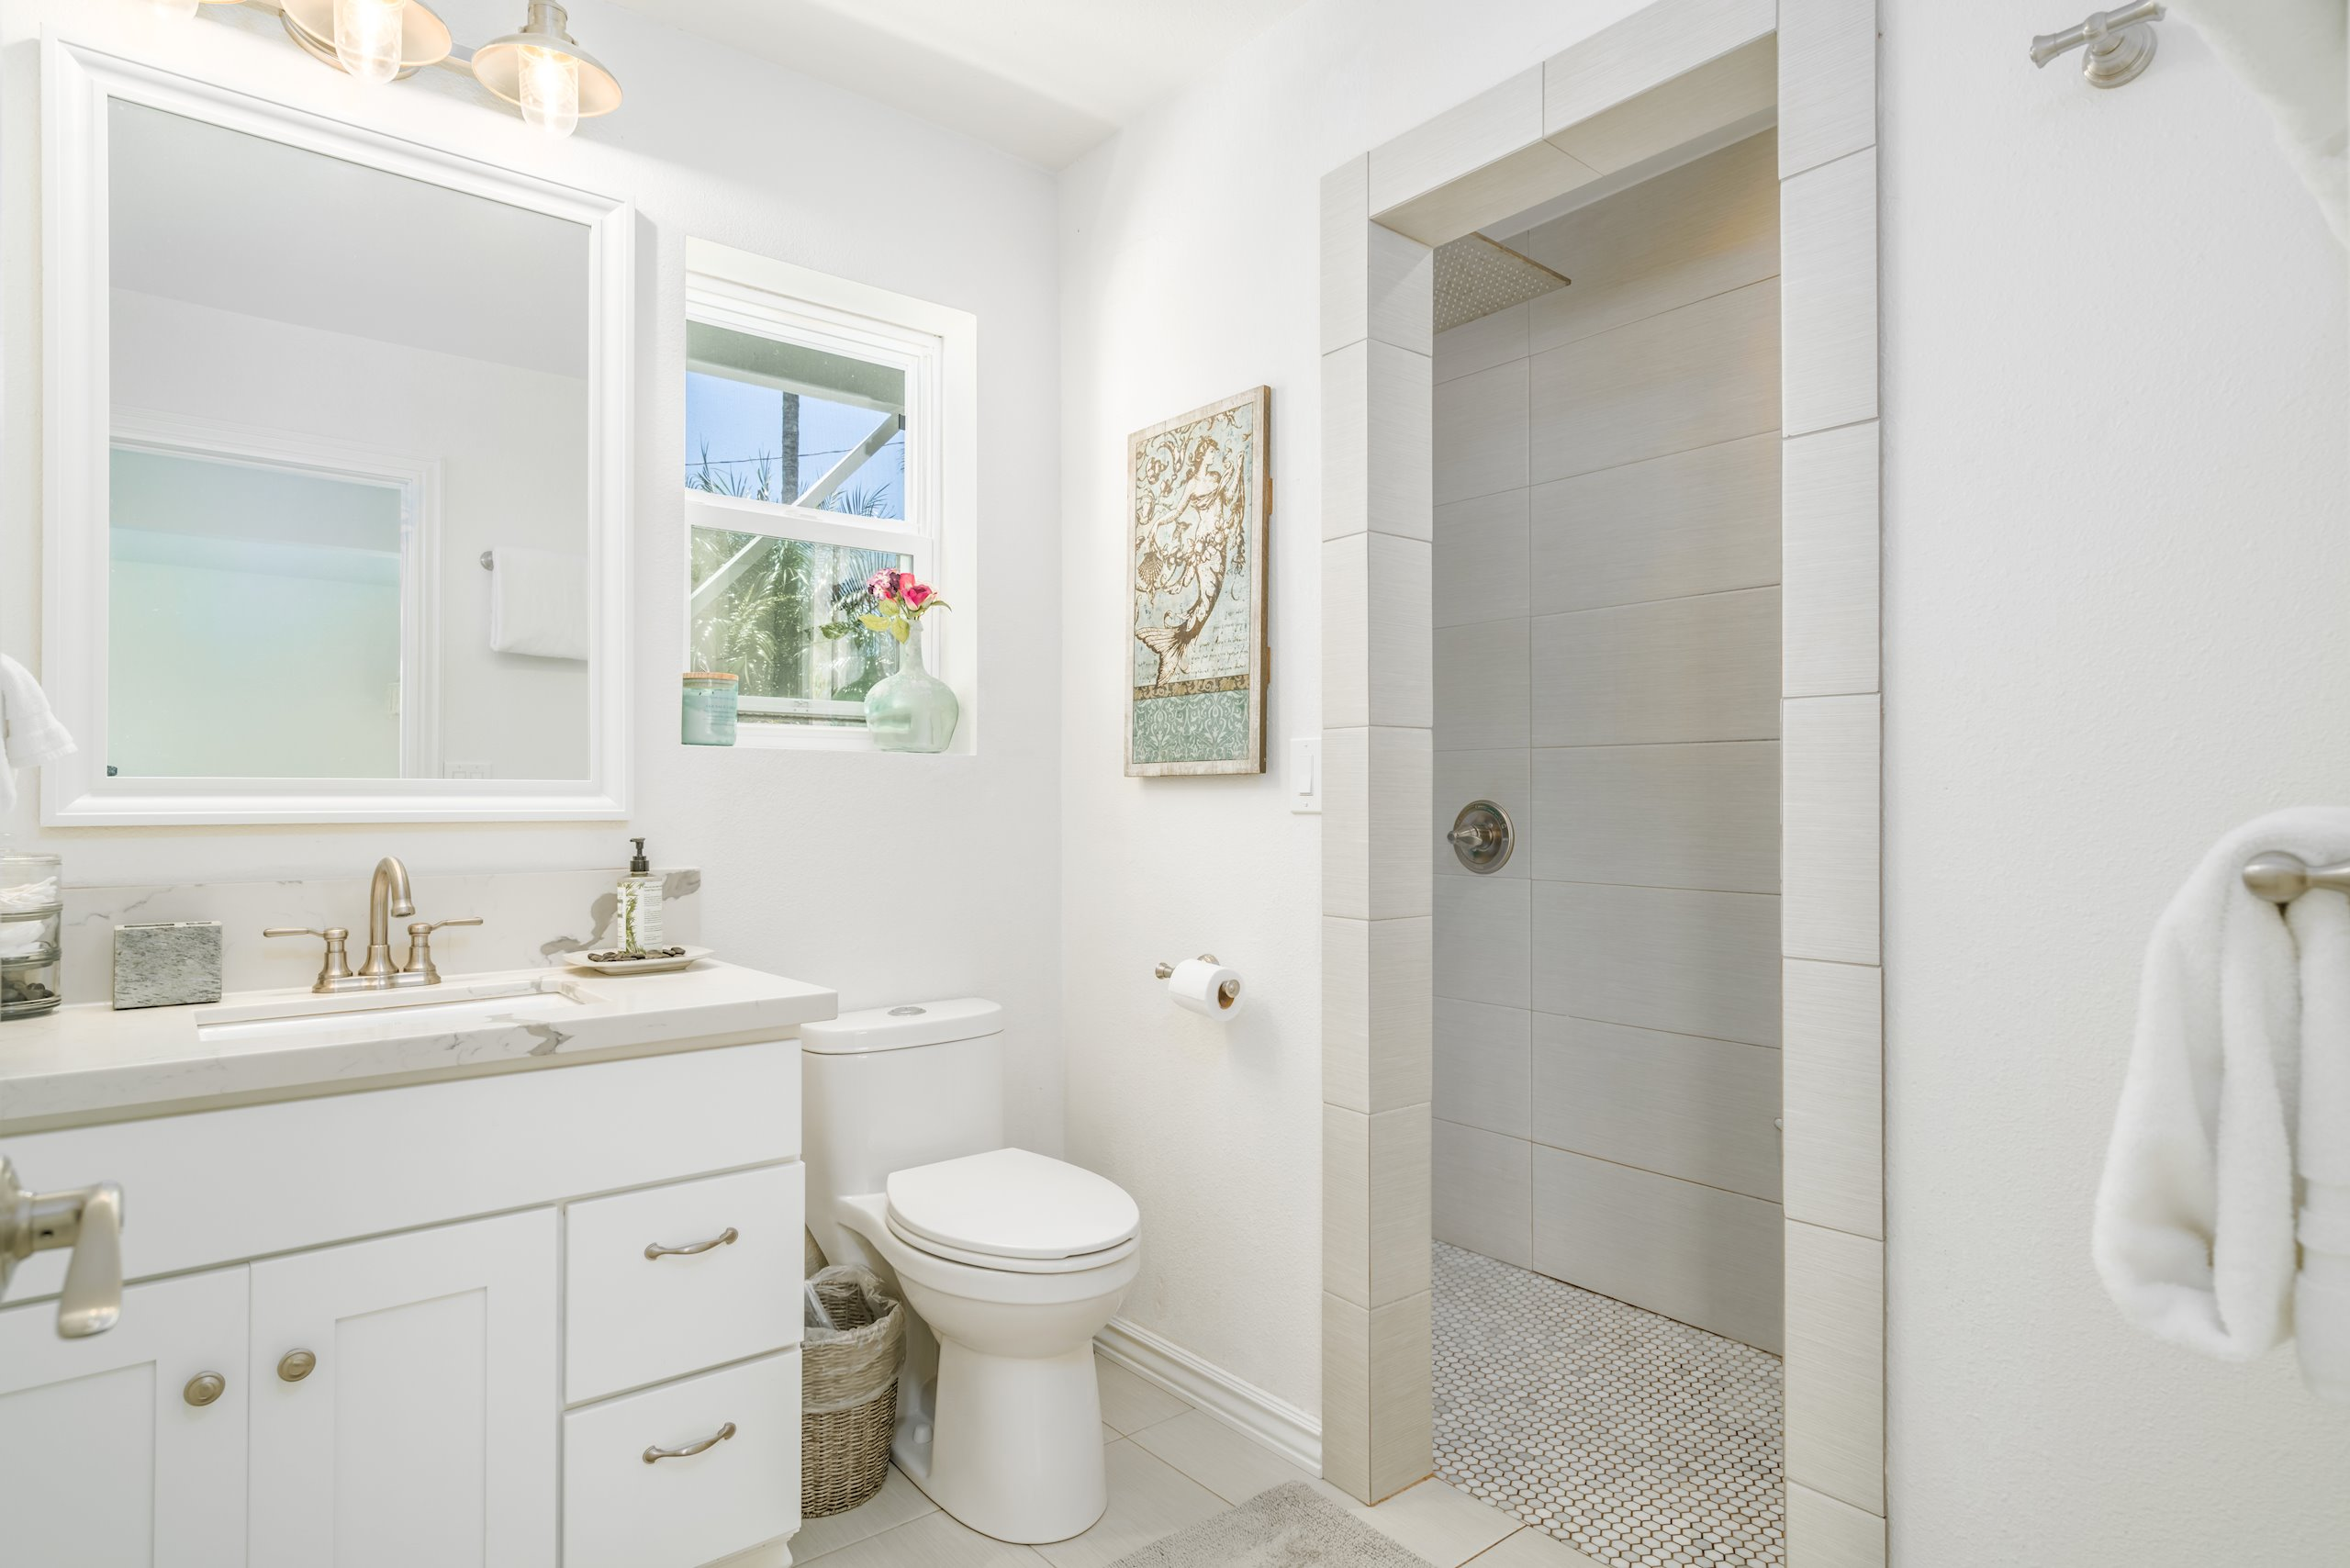 Downstair bathroom features giant ceiling mounted shower head creates a waterfall effect!